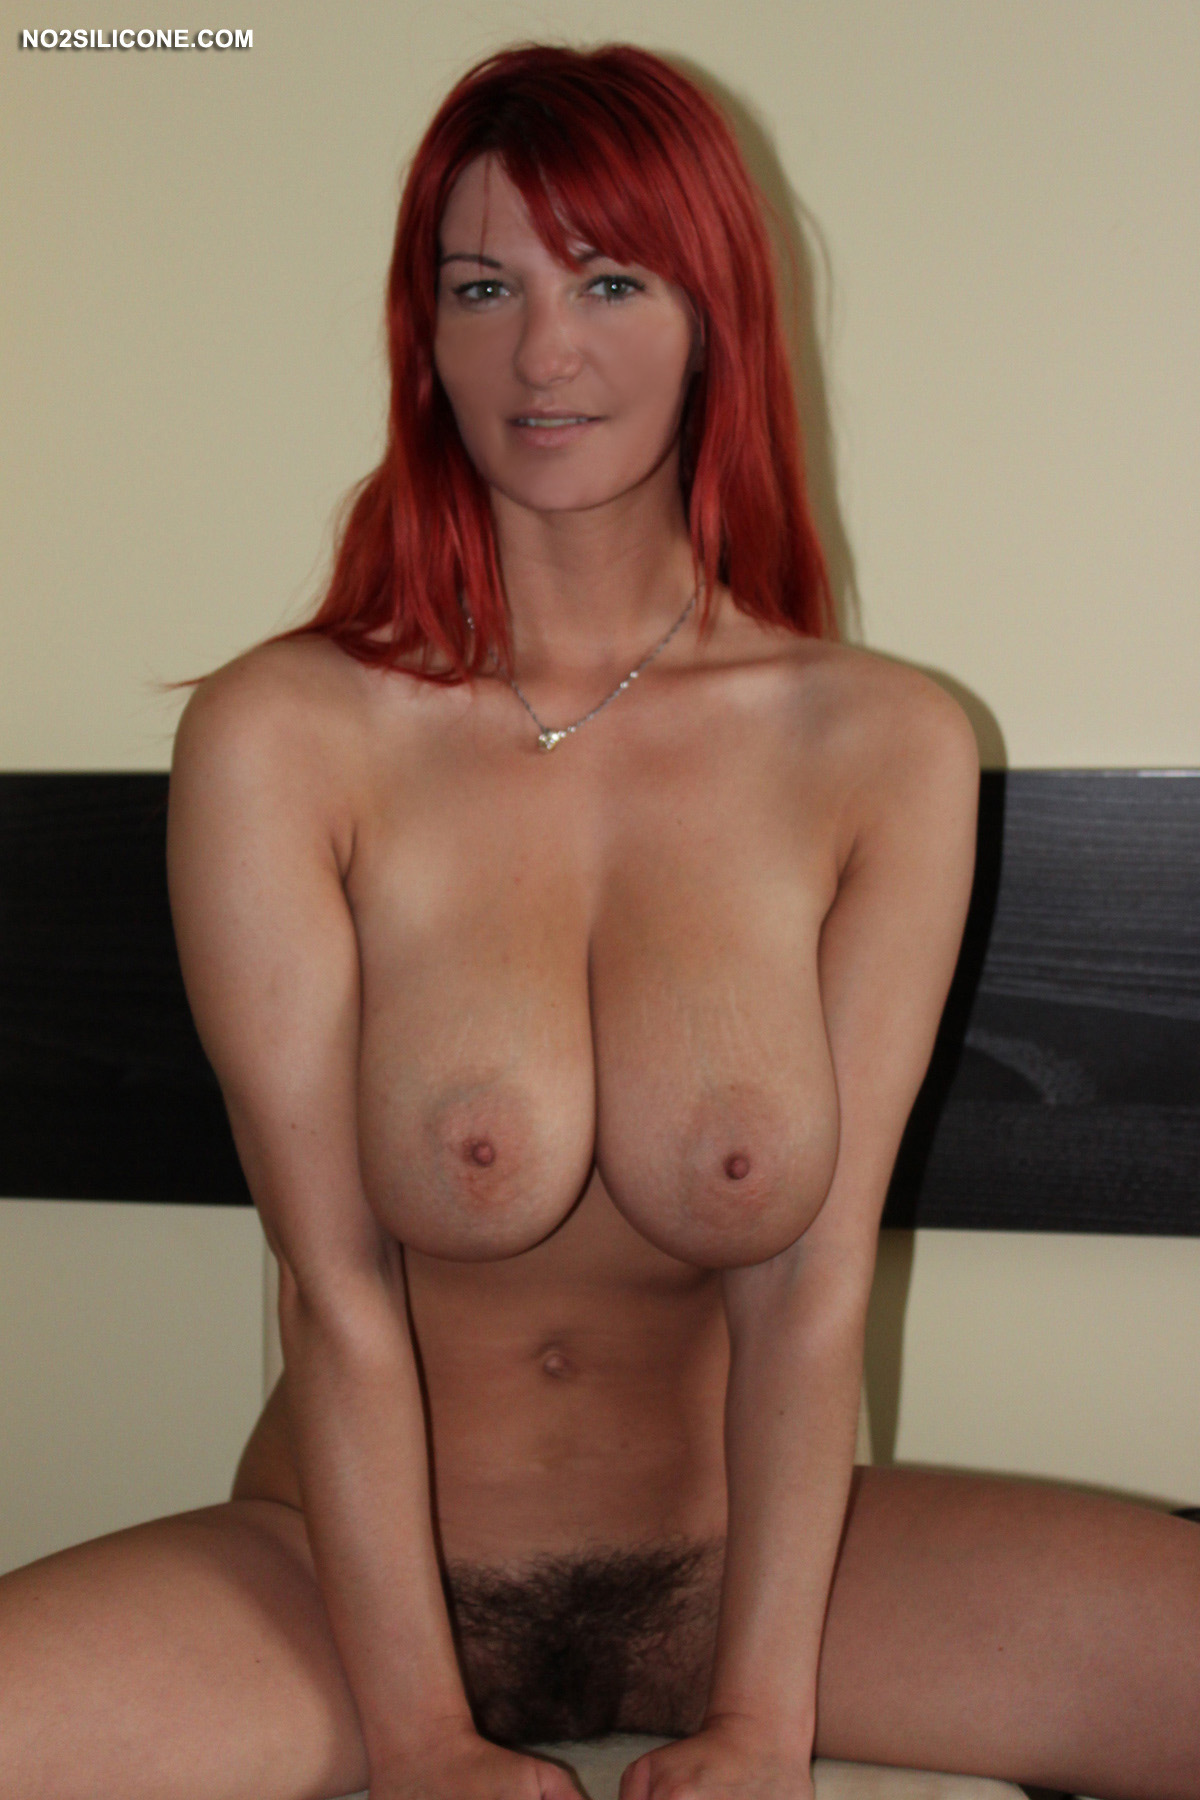 Happens. Big tit redhead hairy pussy